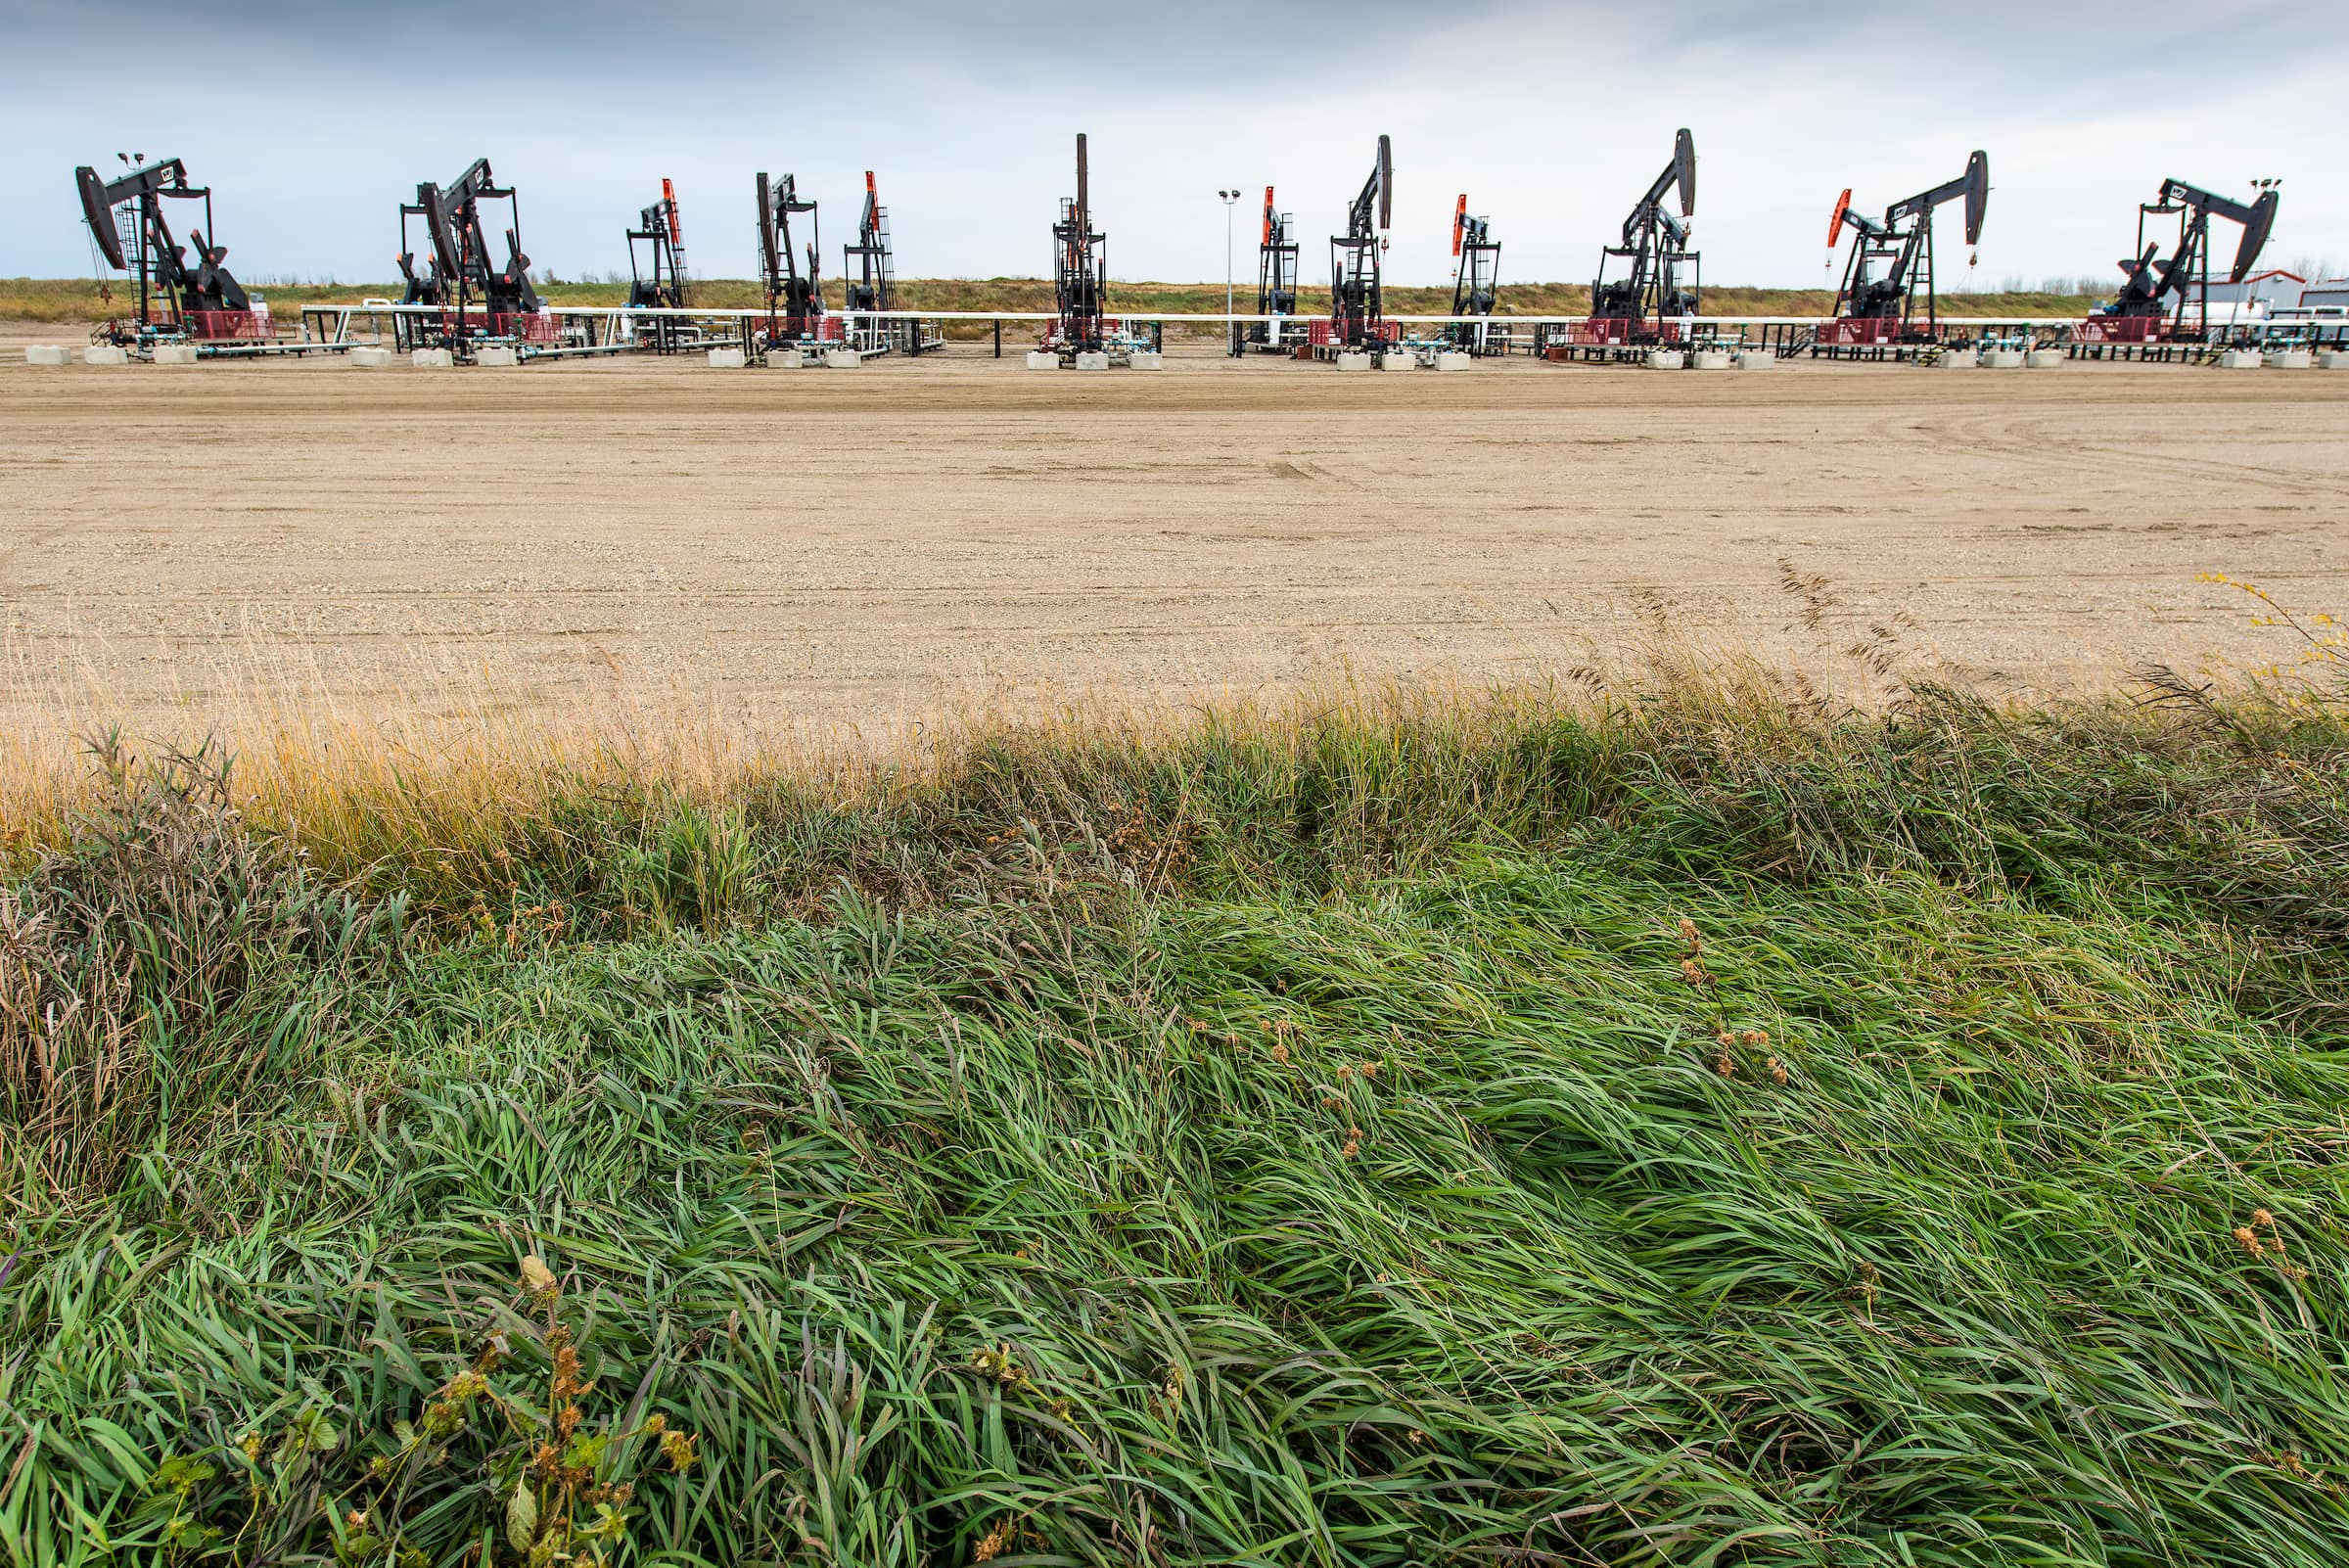 oil pumpjacks in a field